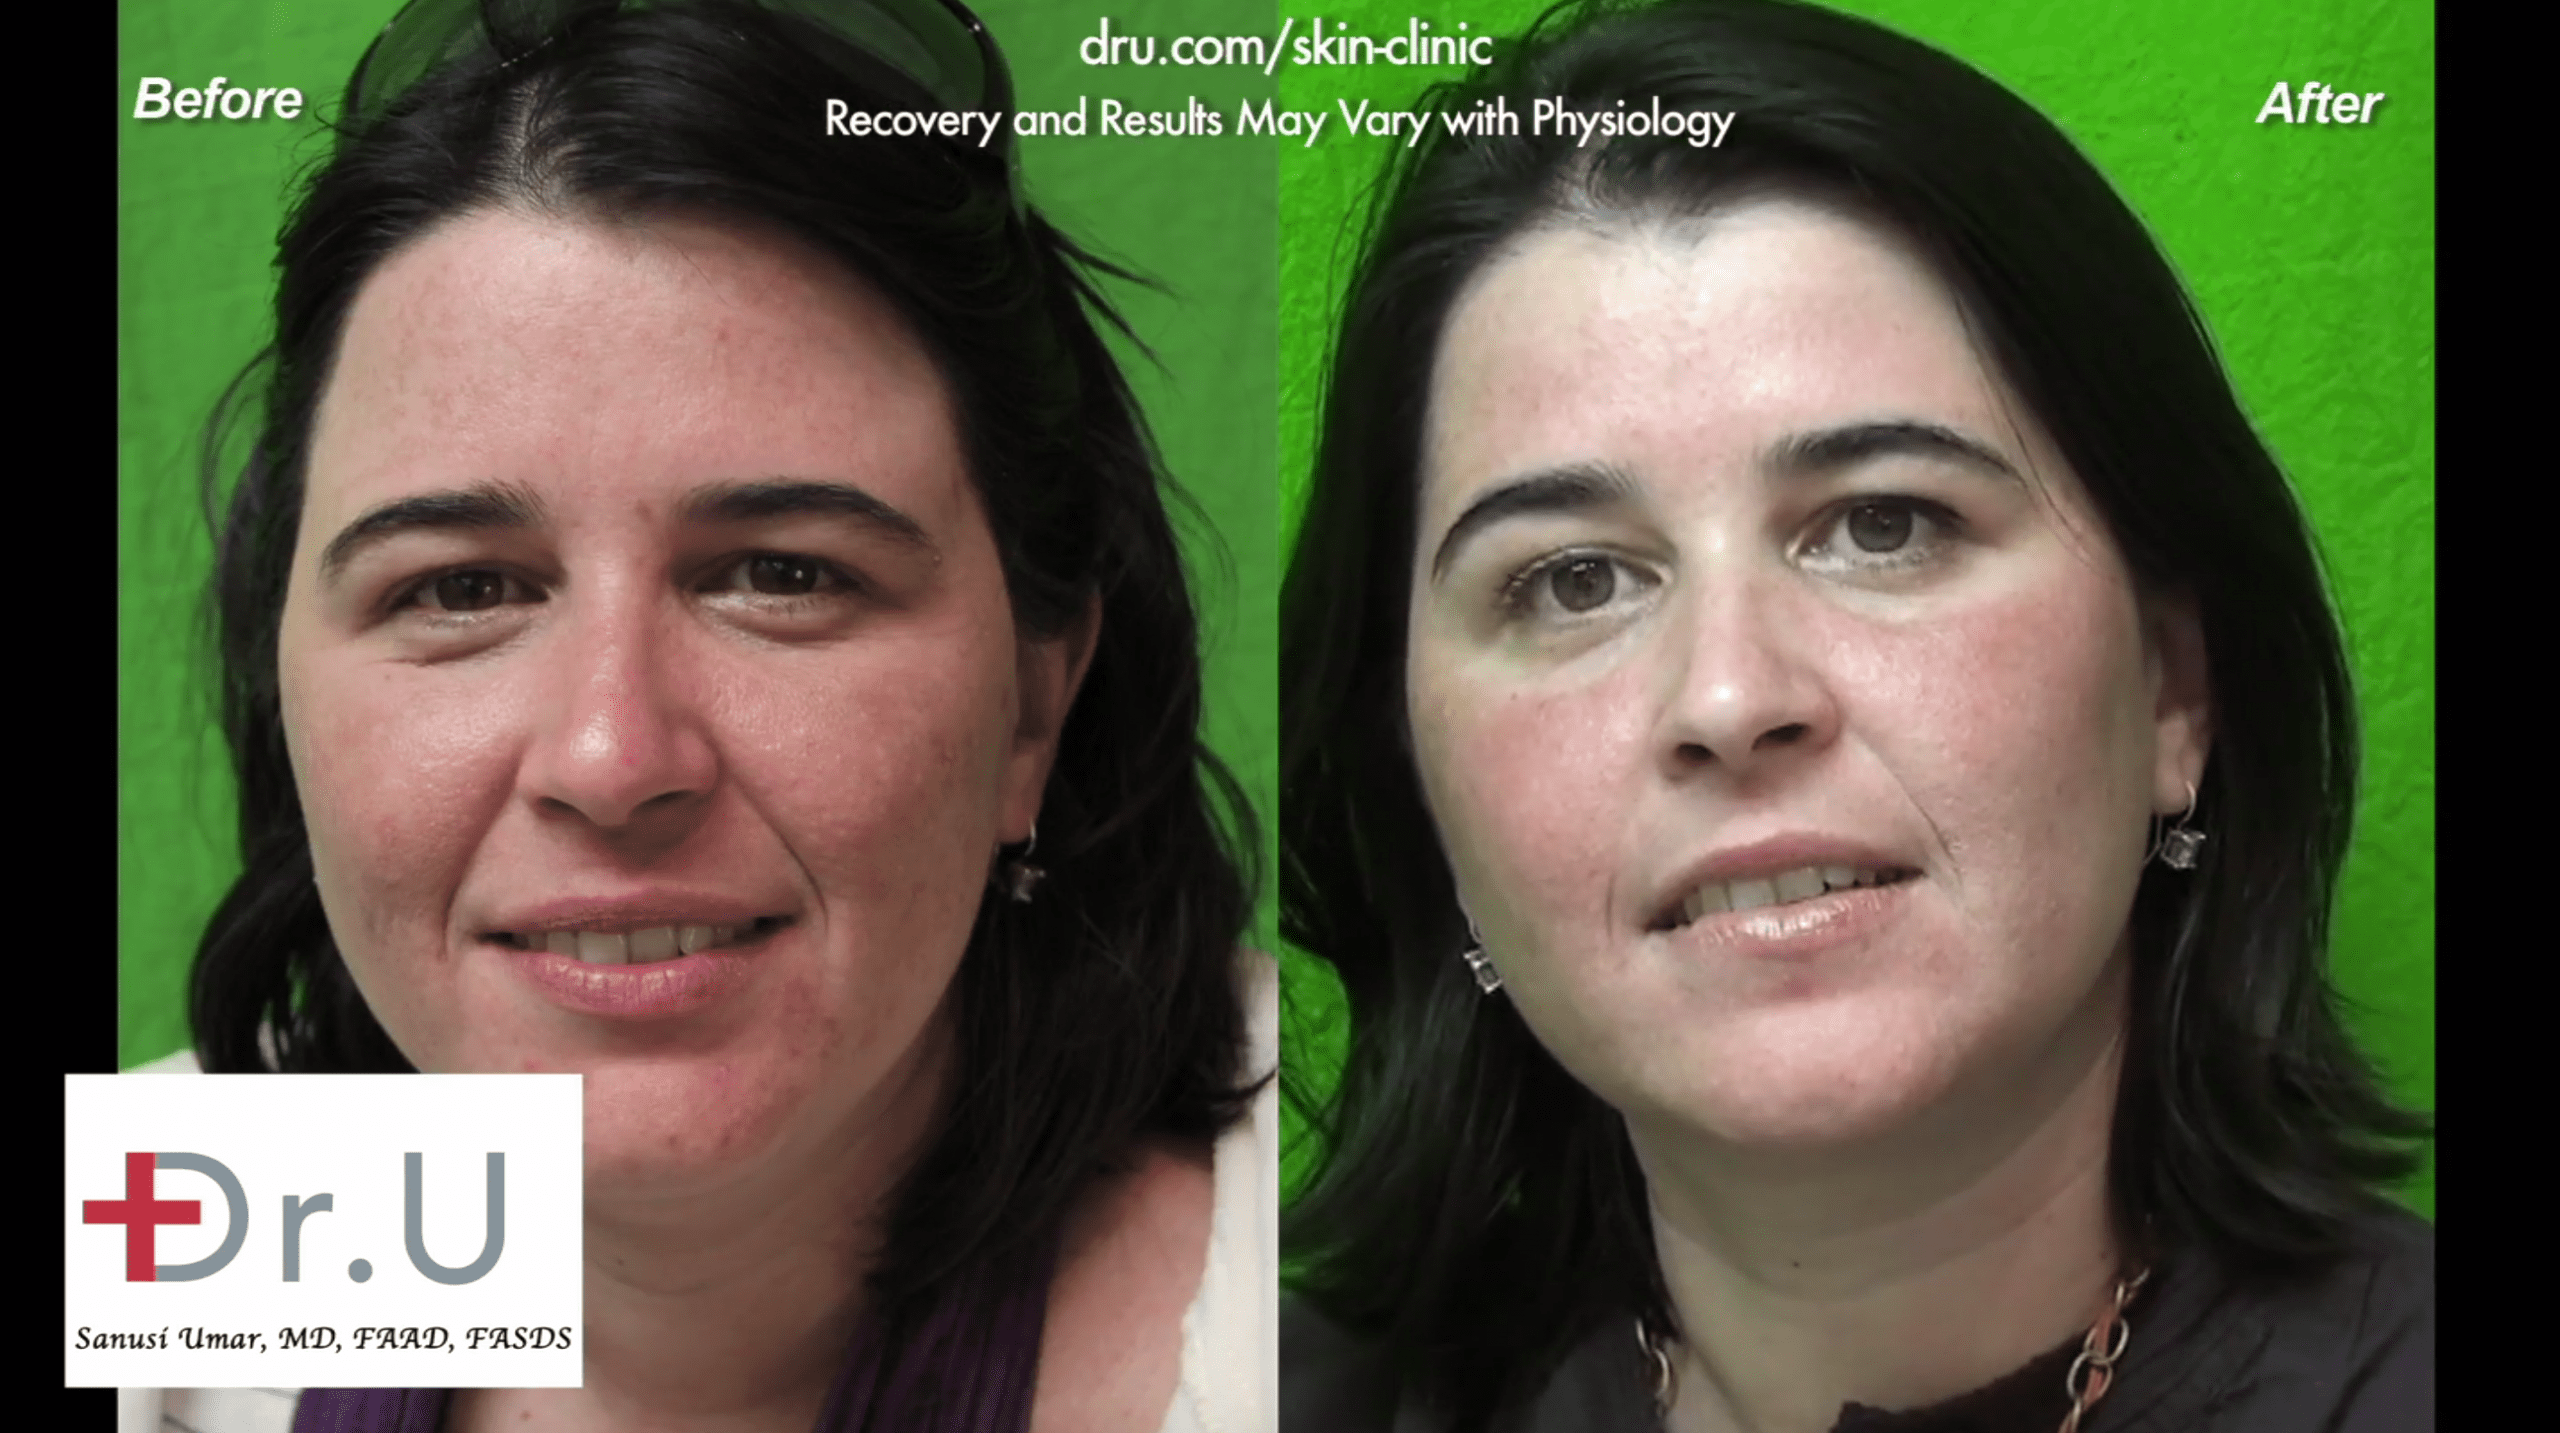 This patient found relief from adult acne at Dr. U Skin Clinic.*